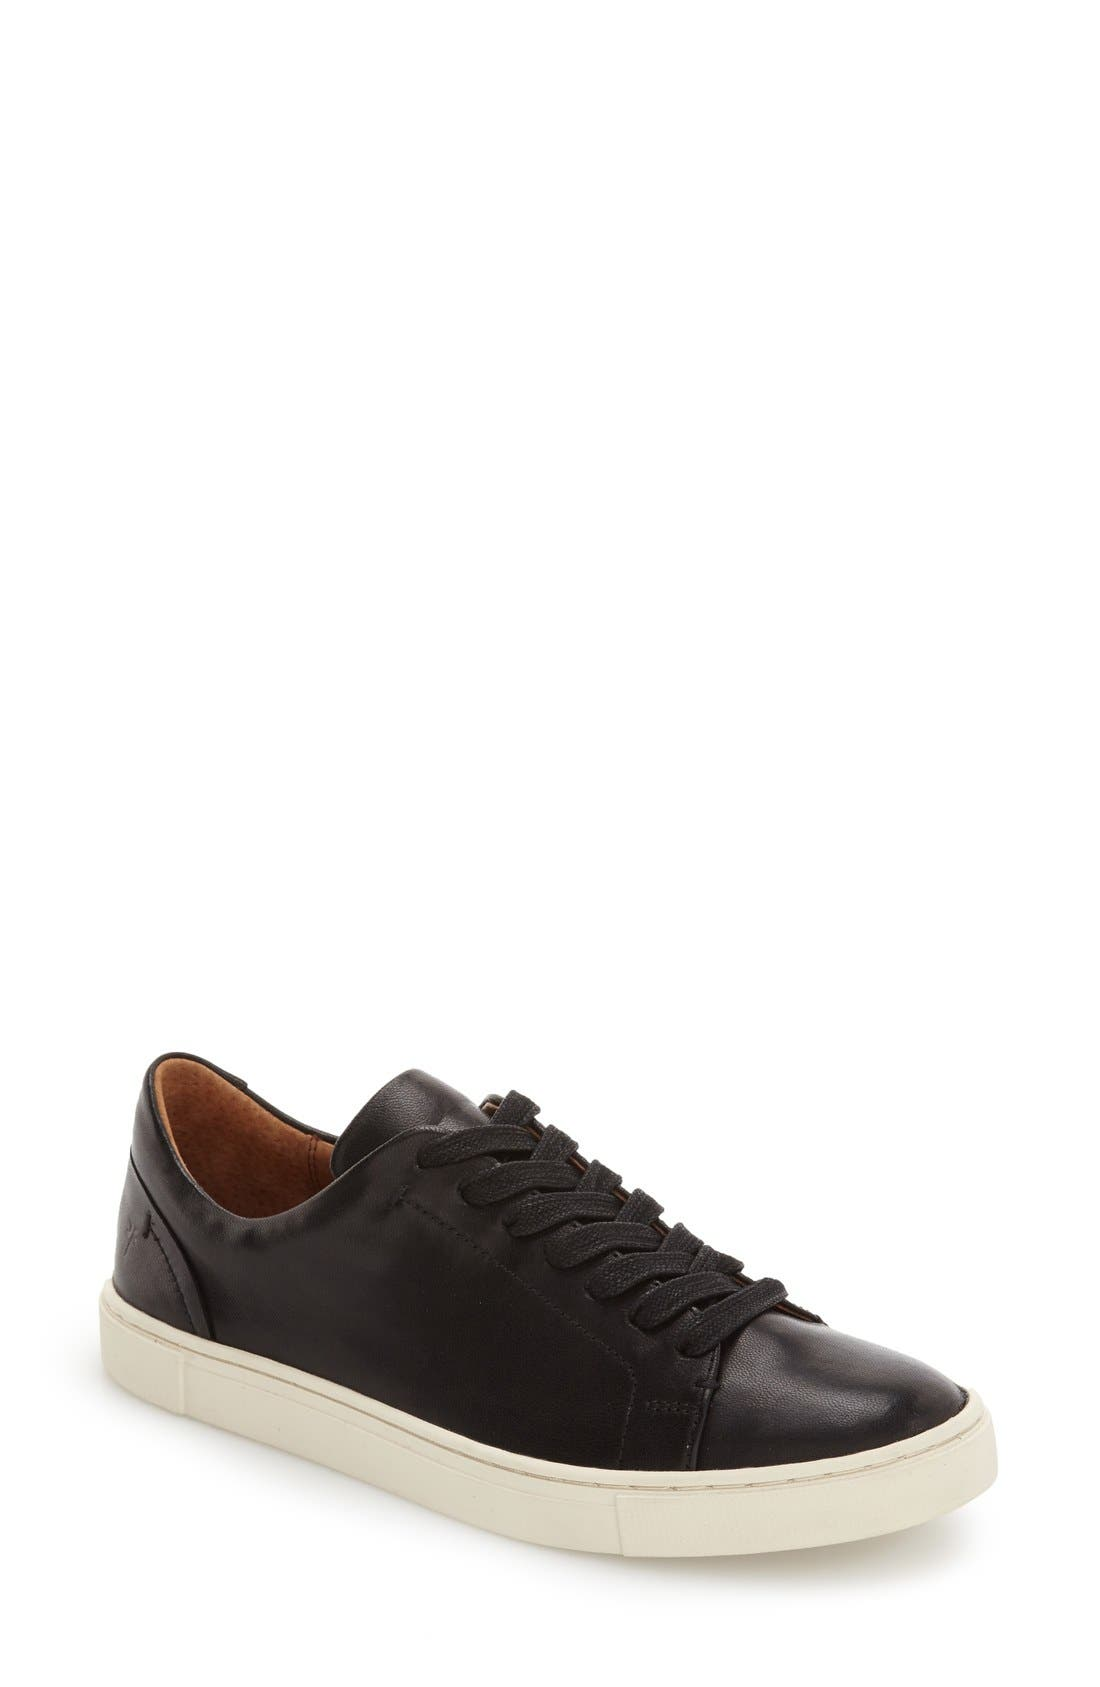 FRYE,                             Ivy Sneaker,                             Main thumbnail 1, color,                             BLACK LEATHER